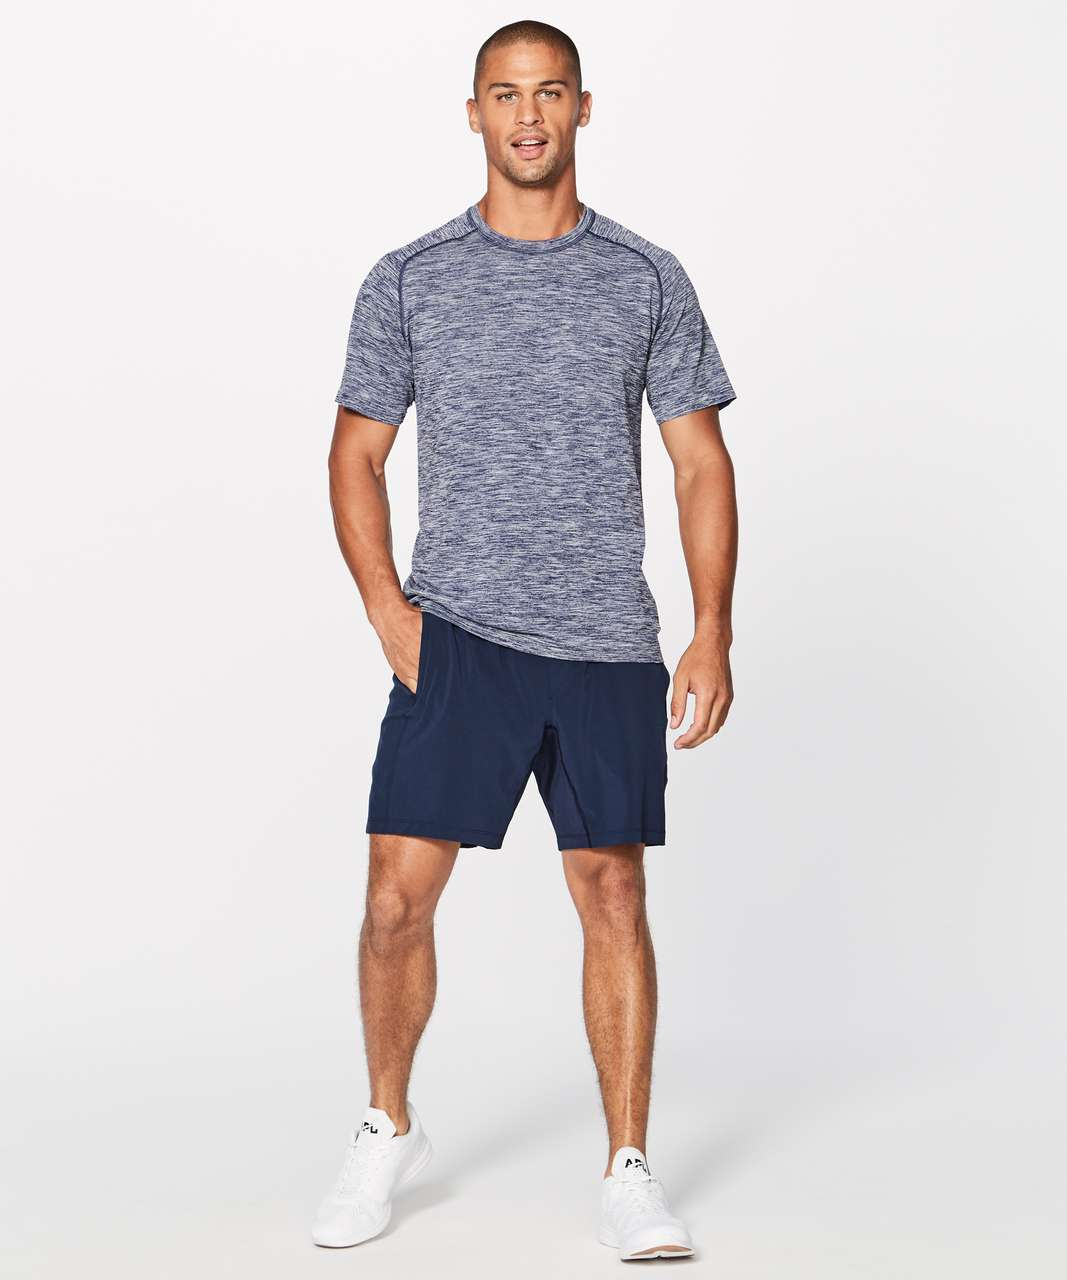 Lululemon Metal Vent Tech Surge Short Sleeve - Deep Navy / White